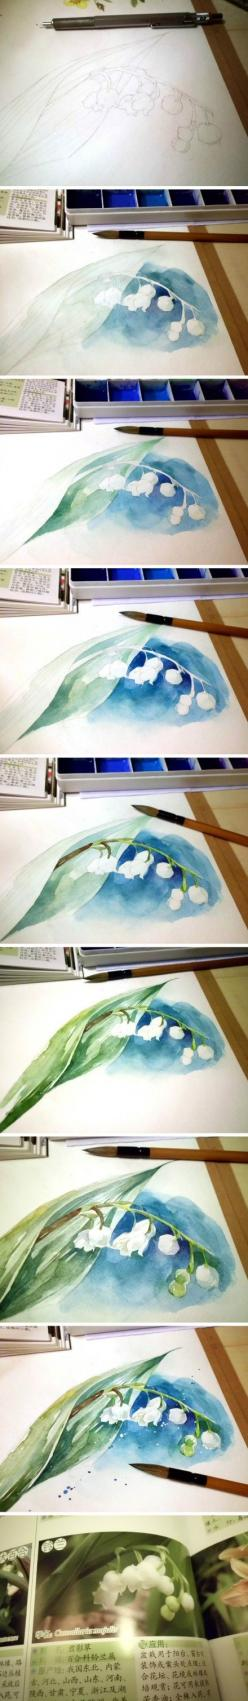 Watercolor step by step lily of the valley: Watercolor Painting, Art Watercolor, Flower Watercolor, Watercolor Flowers, Water Colors, People, Watercolor Tutorials, 插画家园 插画家园原创水彩插画 插画家 Lillies